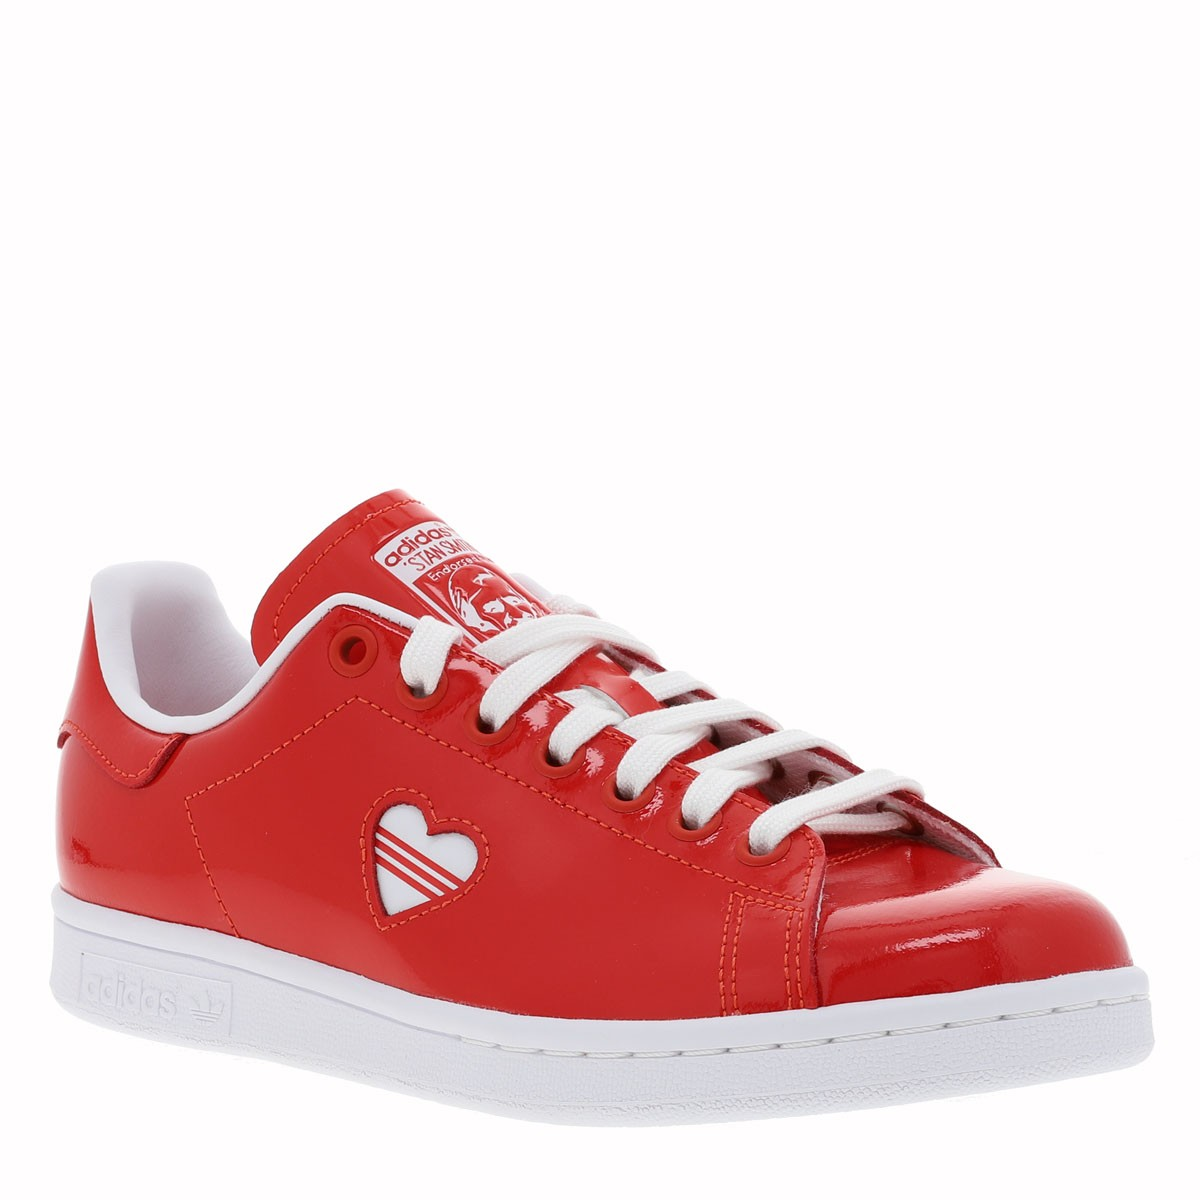 adidas stan smith femme rouge et blanc